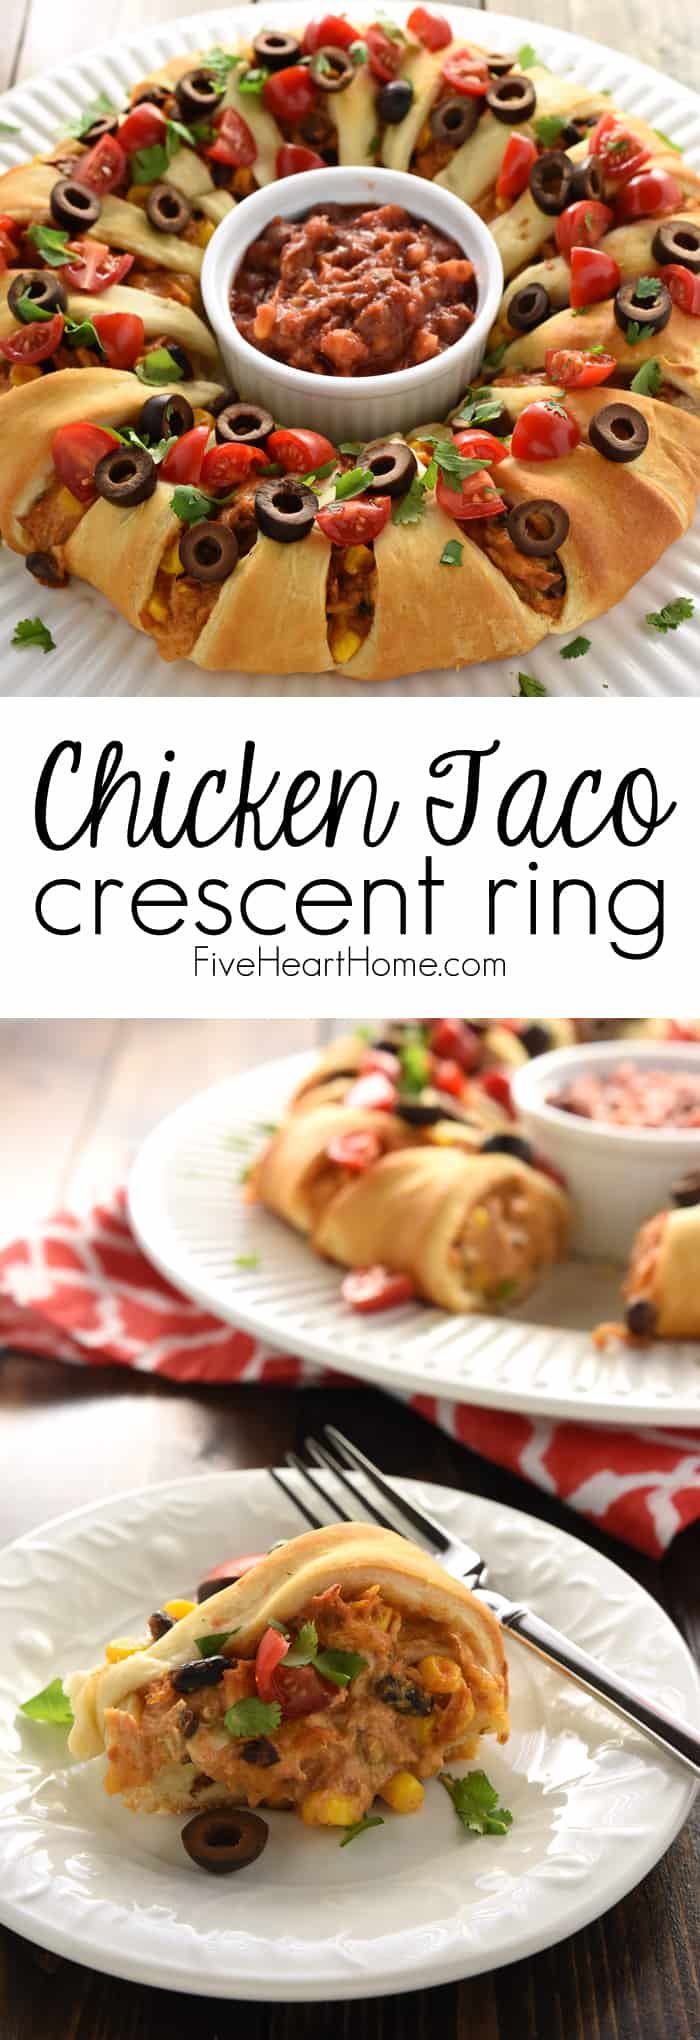 Chicken or Turkey Taco Crescent Ring Collage with Text Overlay